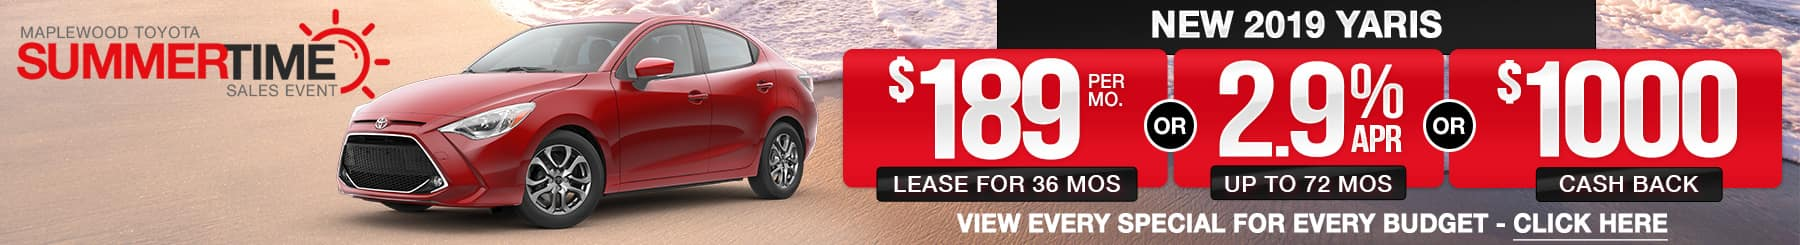 Toyota Yaris Lease Finance Offers